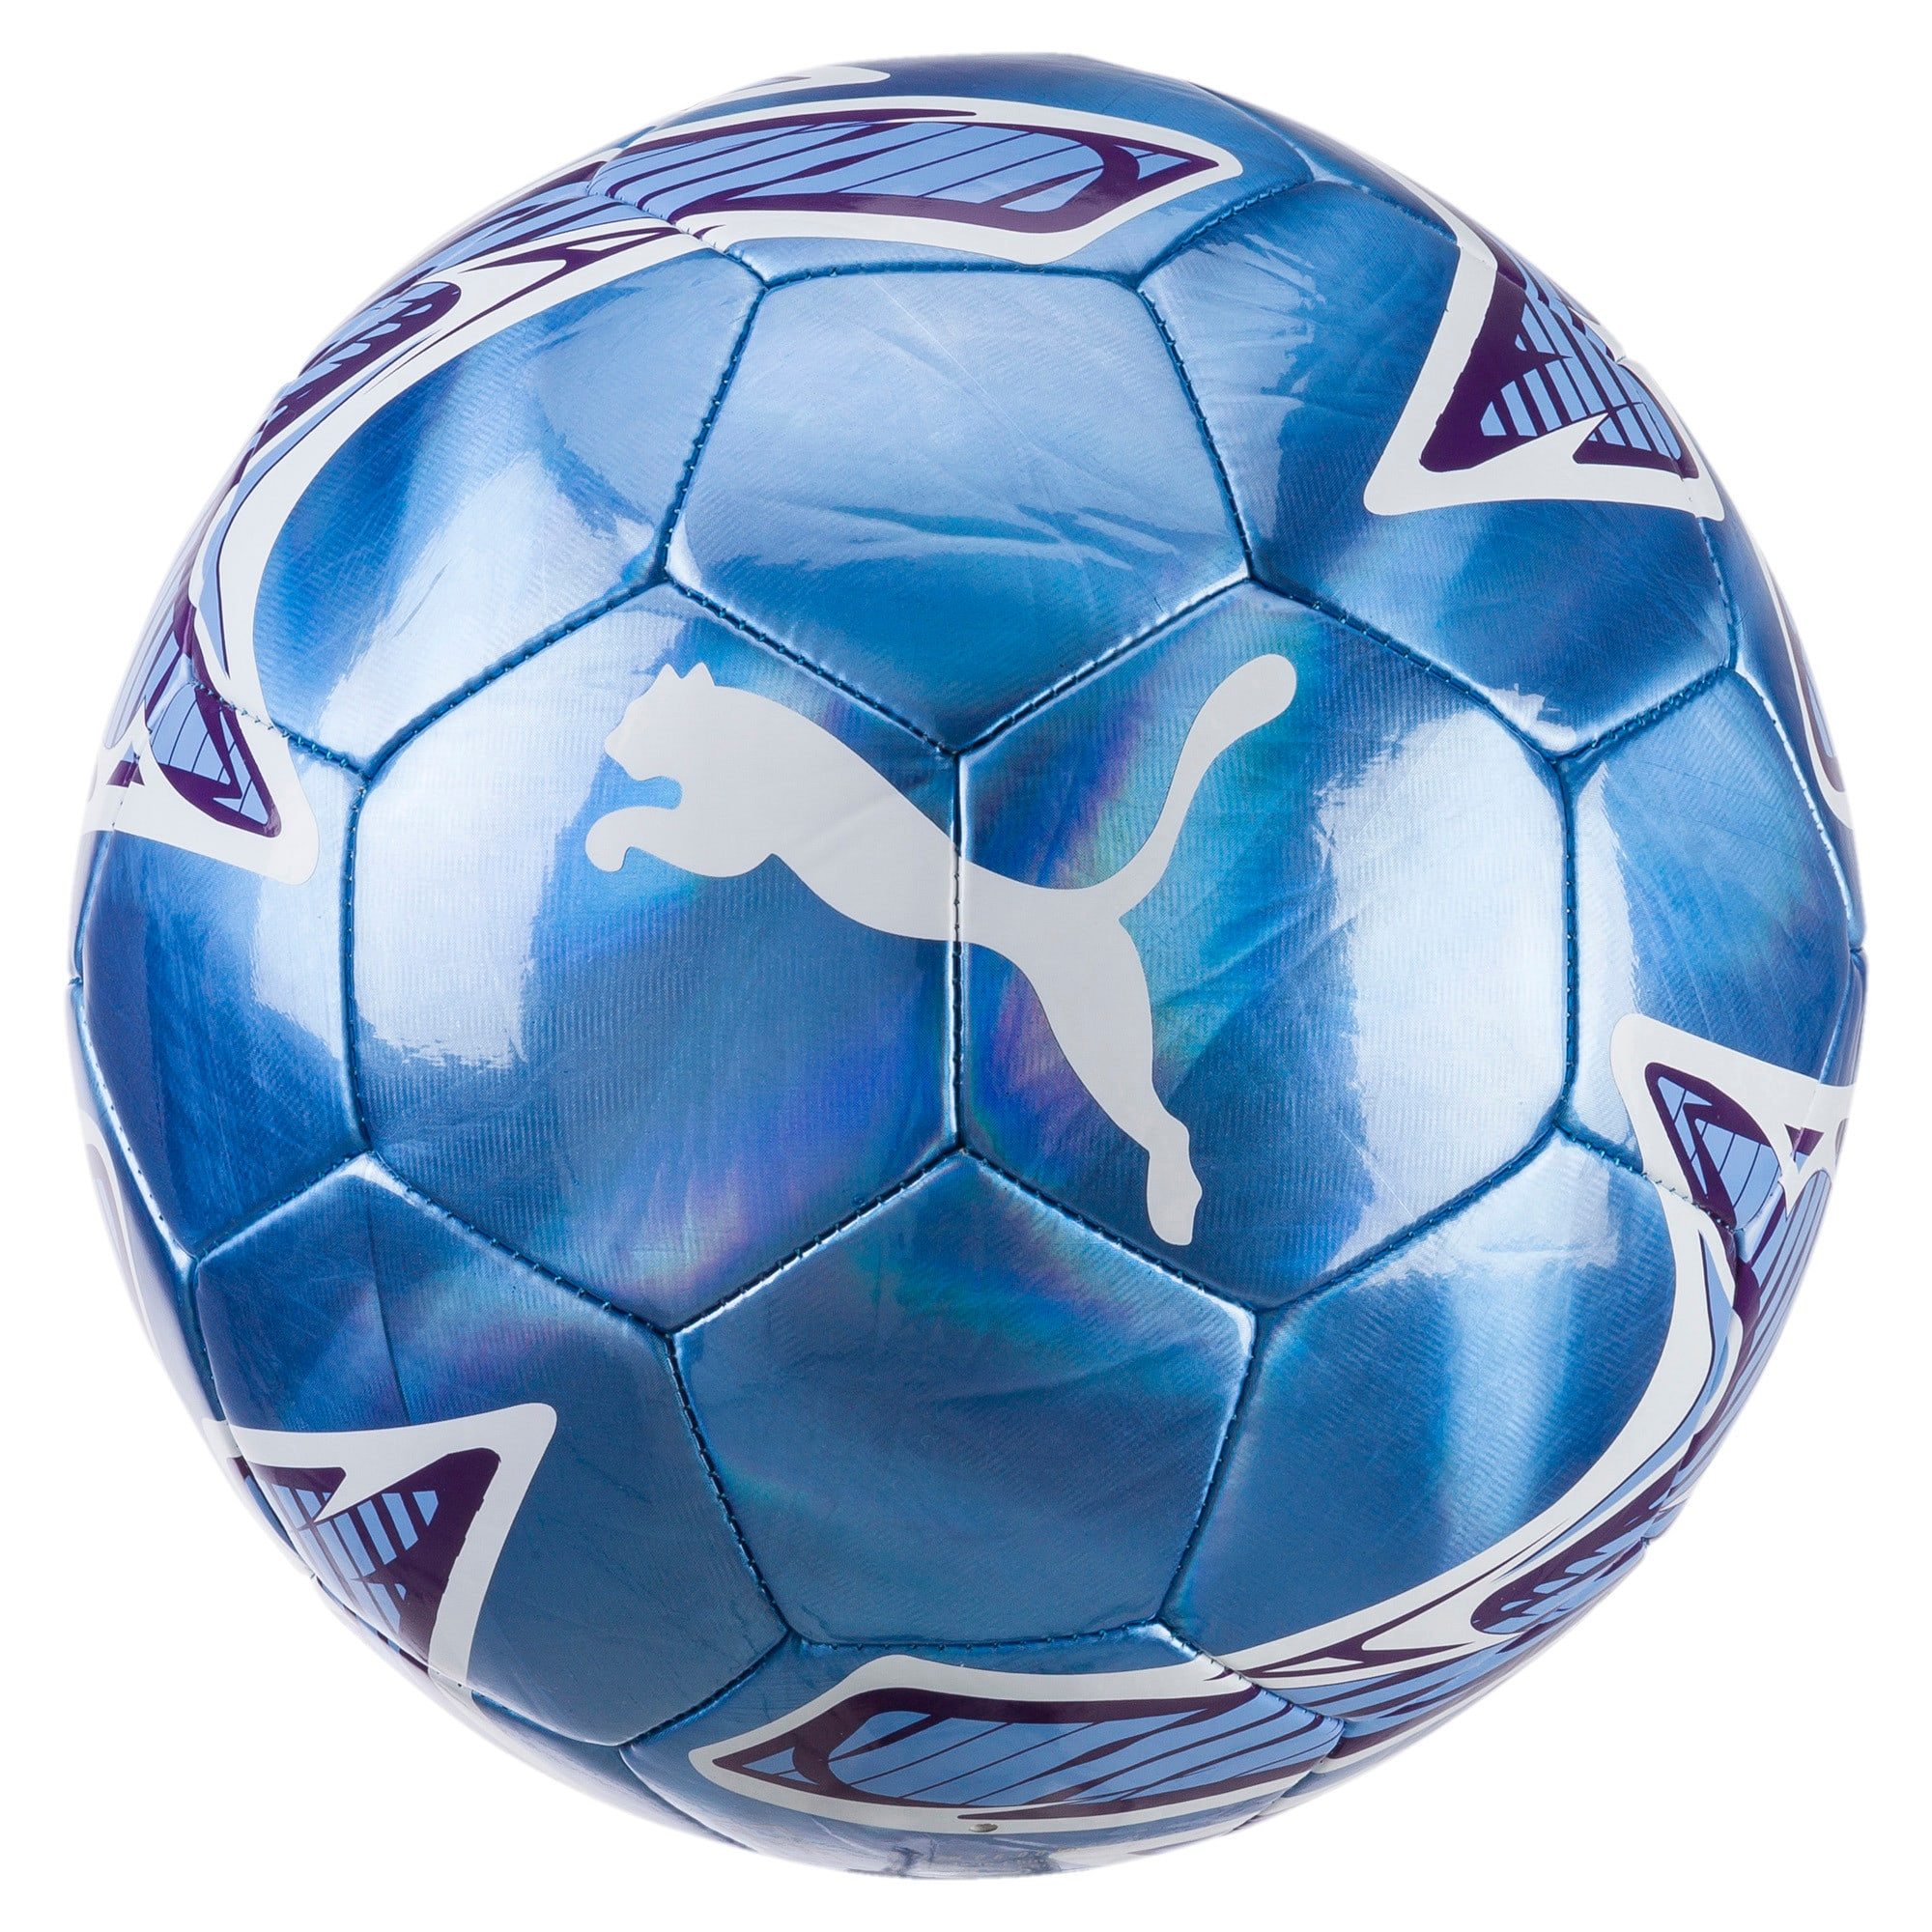 Thumbnail 1 of Man City PUMA ONE Laser bal, Team Light Blue-Puma White, medium